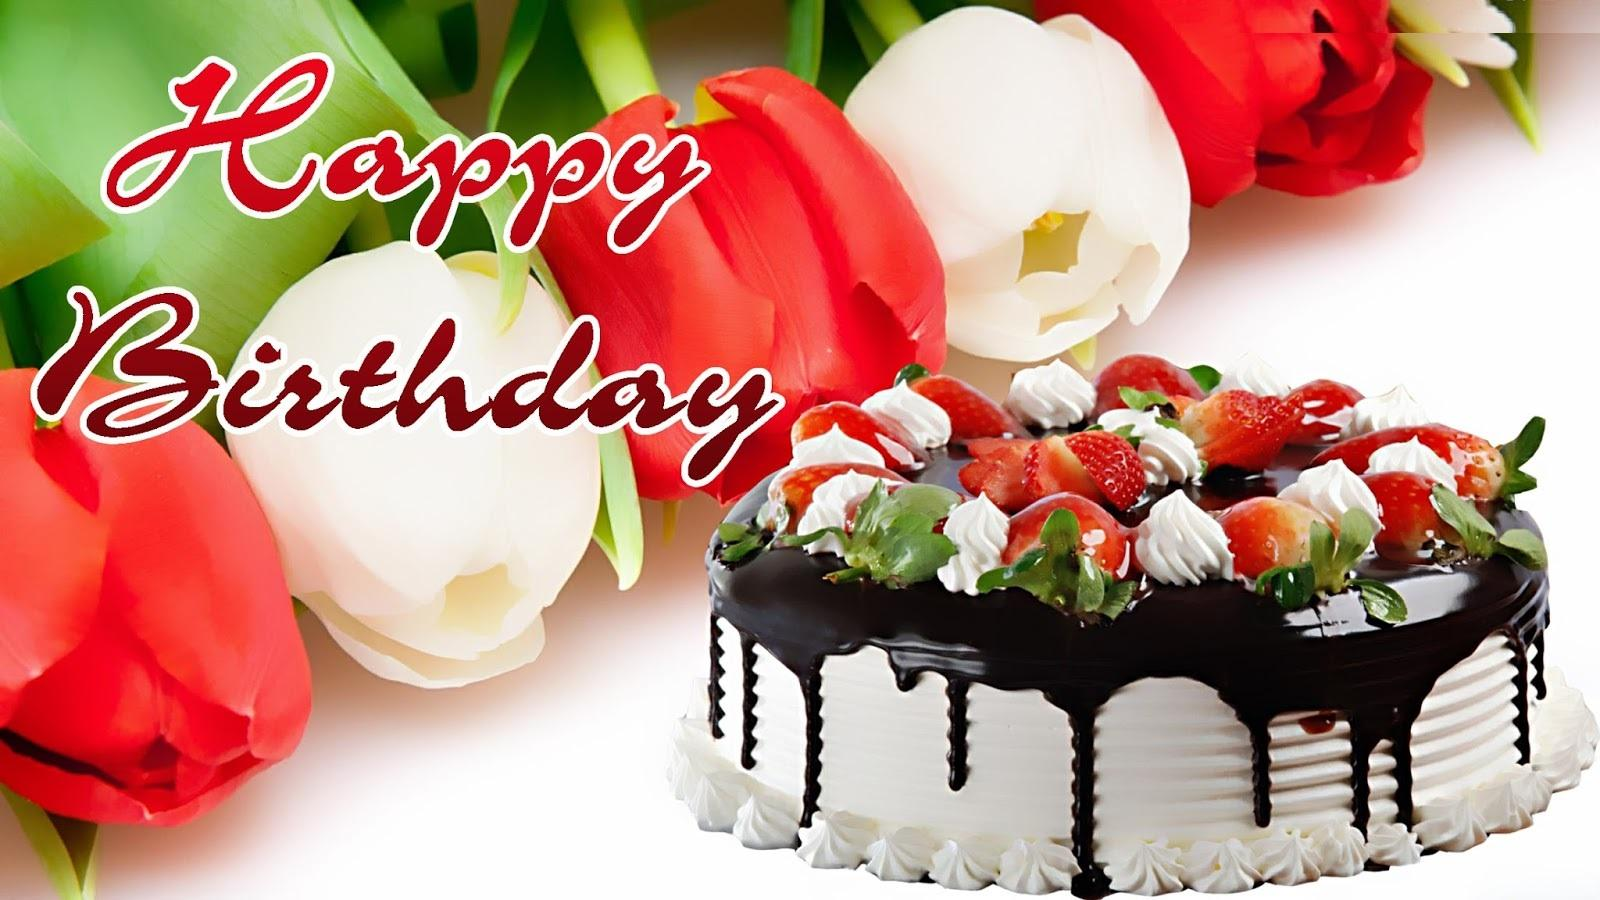 download happy birthday images hd ; happy-birthday-images-26